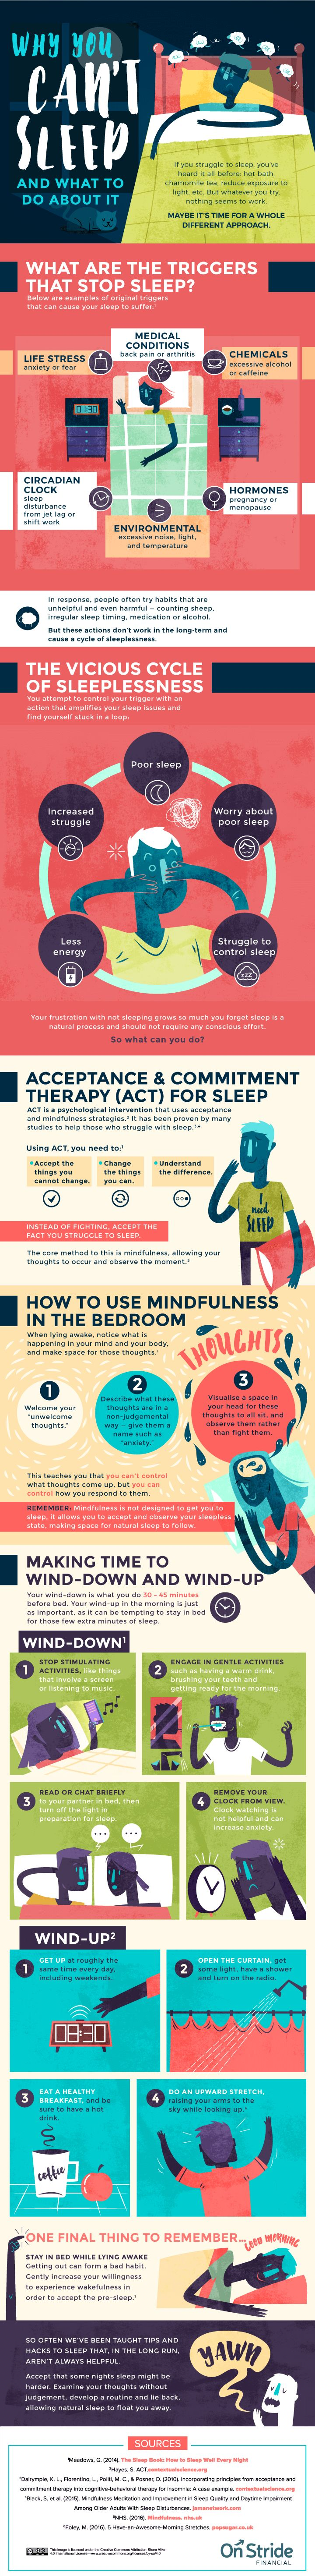 Can't sleep? Here are 11 simple tips in this awesome infographic (Source: Onstride) to help you set yourself up for restful sleep. PLUS click through for my #1 most effective strategy for getting good sleep (dealing with a big root cause behind sleep problems) and download your free copy of the Guided Sleep Meditation audio. https://www.pinchmeliving.com/cant-sleep/